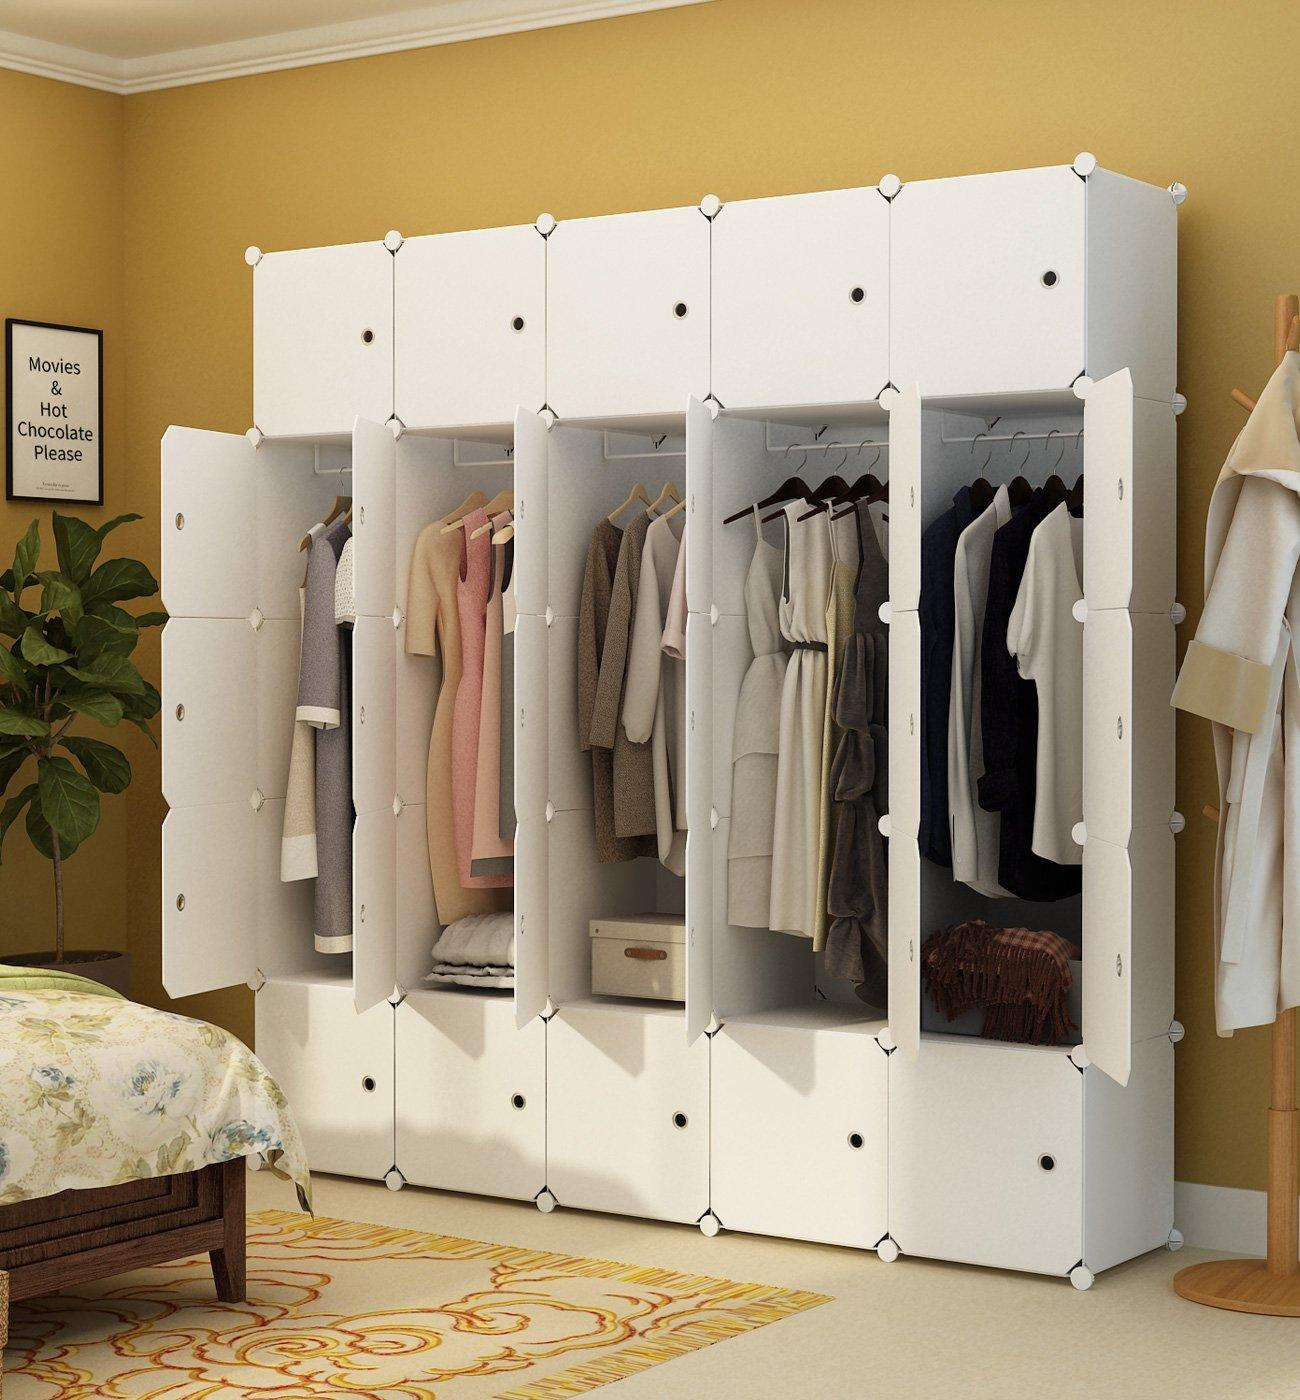 2019 Portable Wardrobe Closet For Hanging Clothes